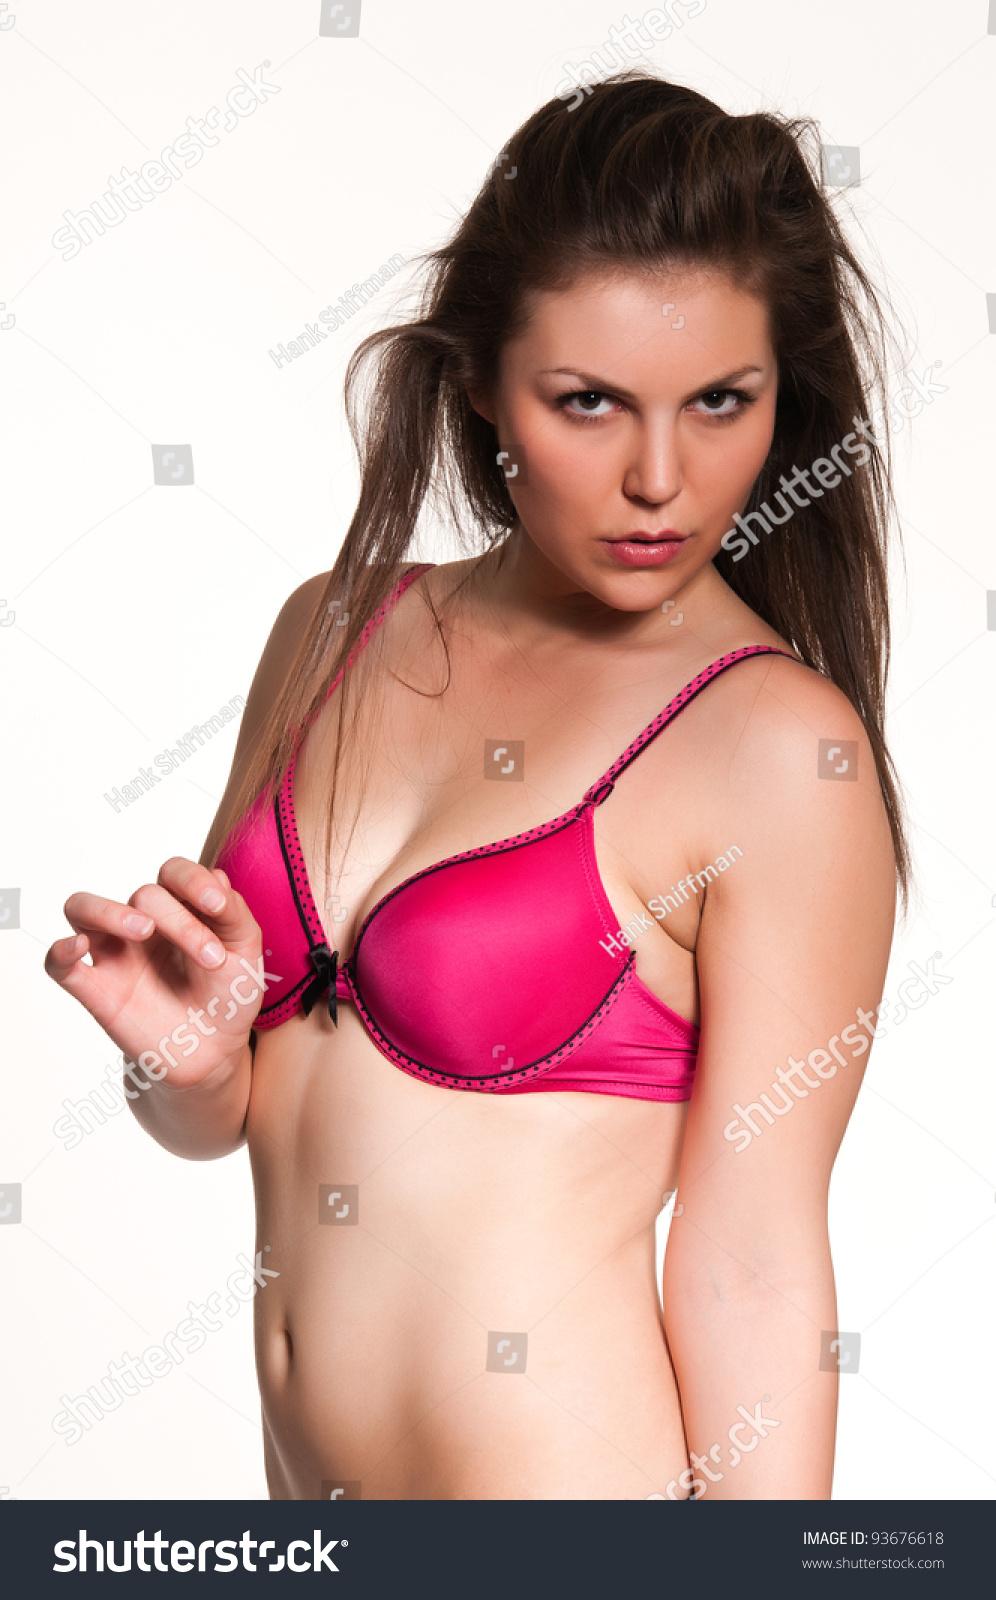 Frangipani spa flowers stock photo image 14654190 - Pretty Young Brunette Dressed Bright Pink Stock Photo